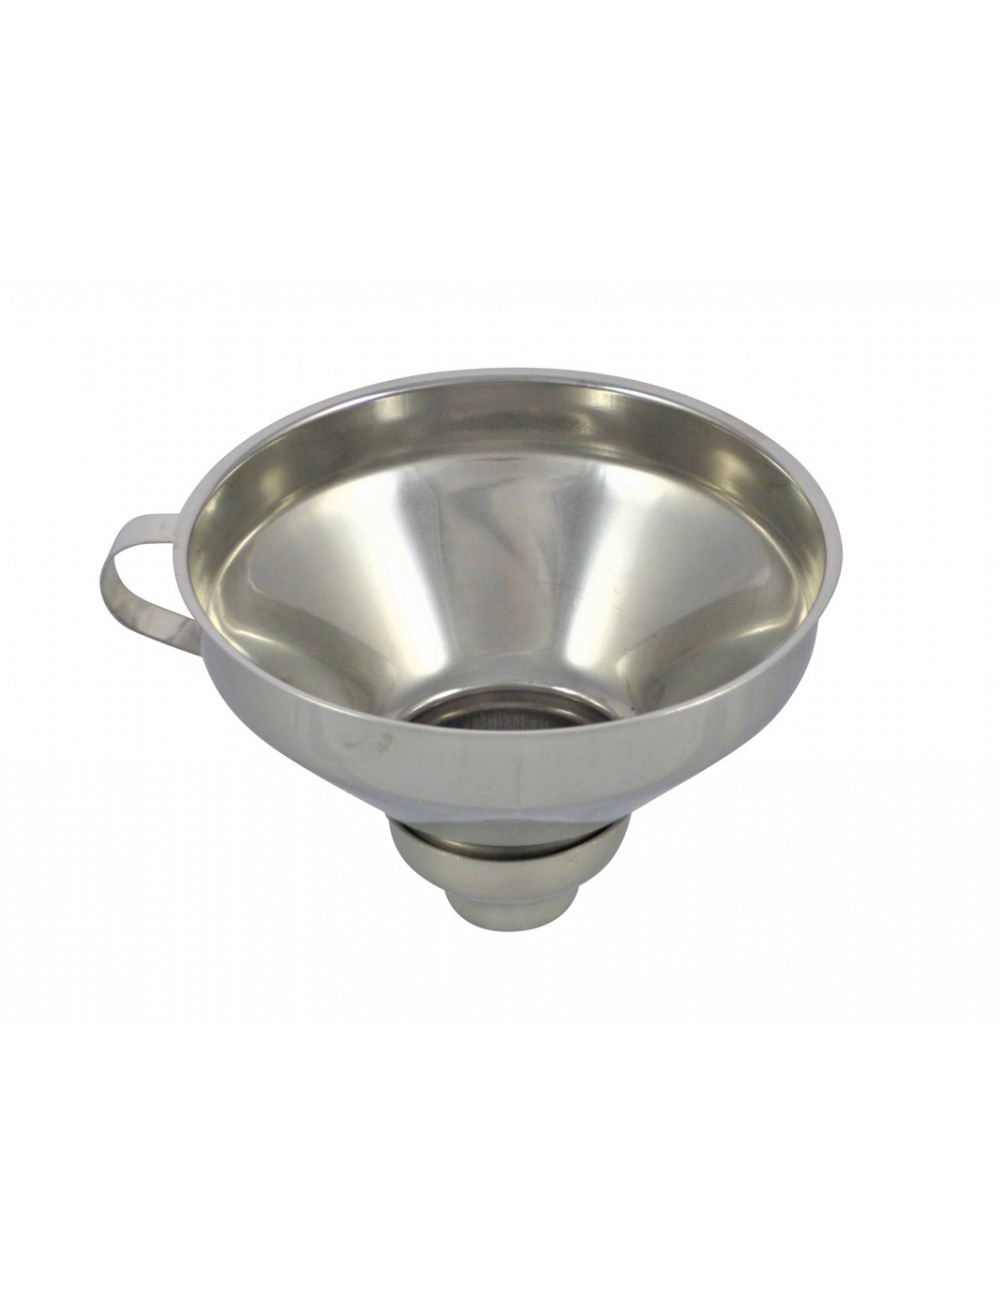 JAM FUNNEL WITH 2 TIPS - STAINLESS STEEL